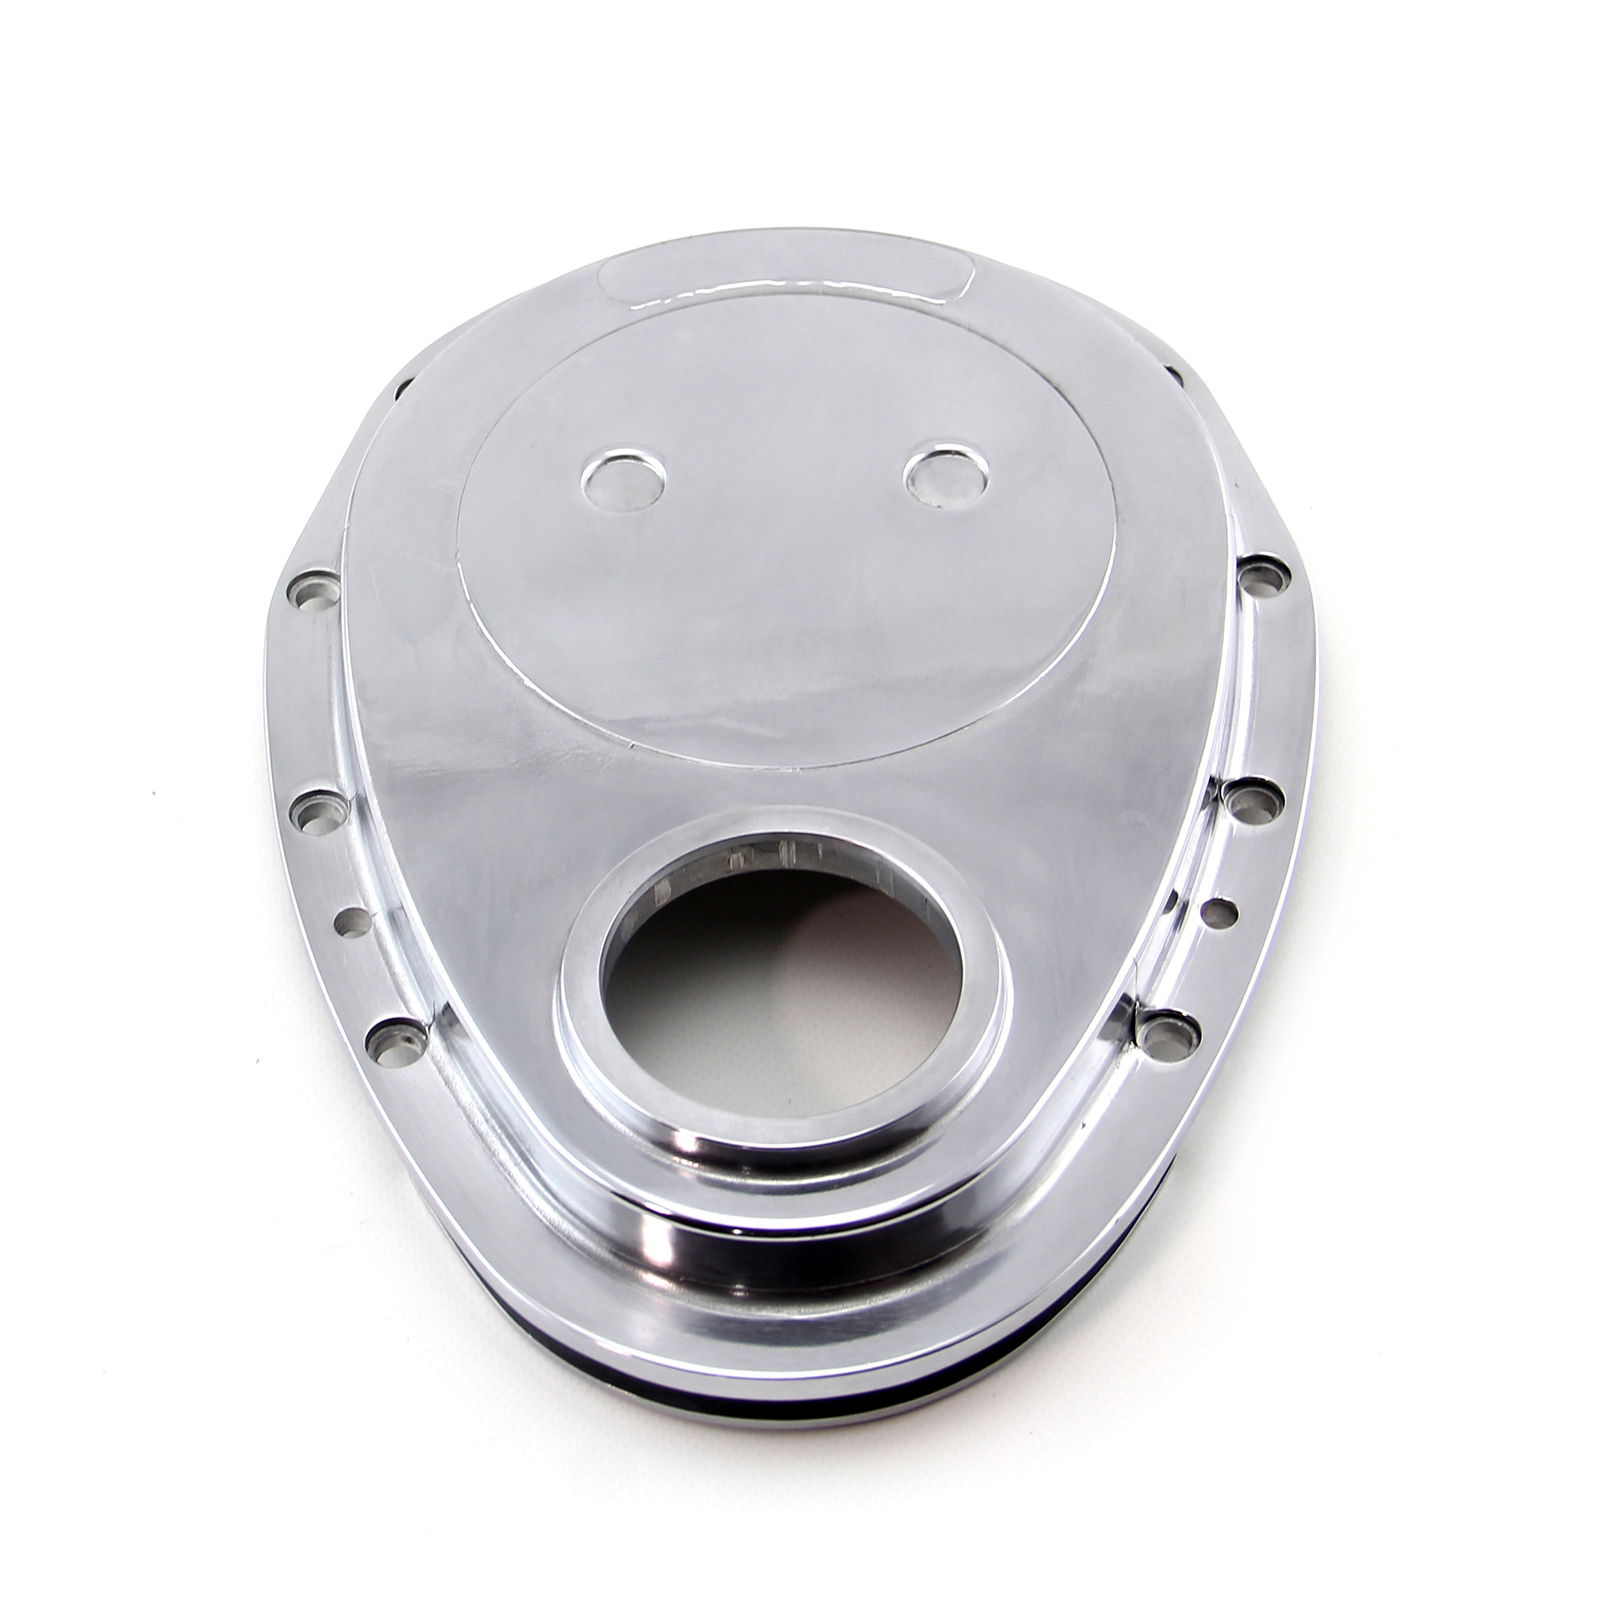 Chevy SBC 350 Aluminum Timing Chain Cover Polished